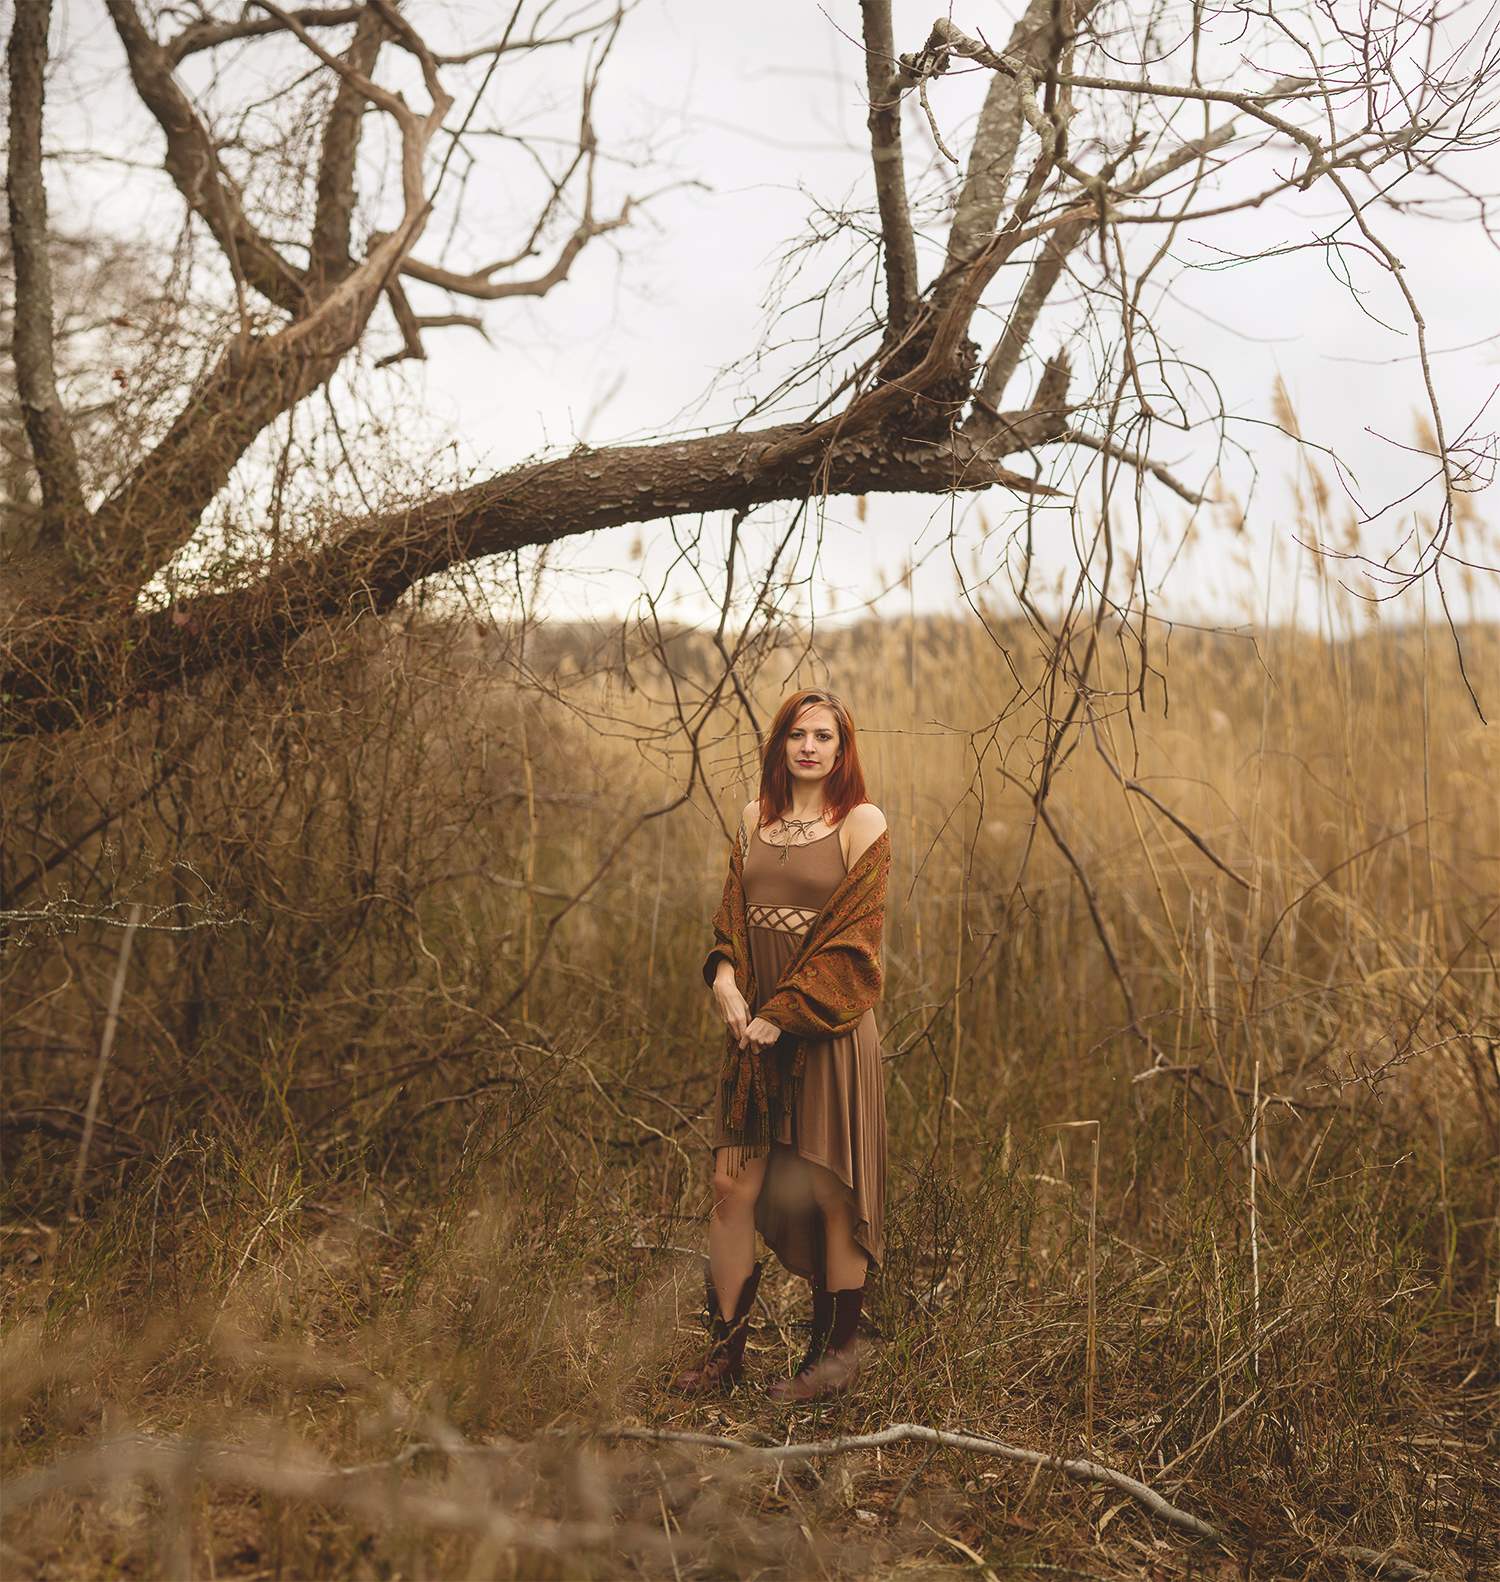 victoria_styled_shoot_wading_river_ny_winter_lake_woods_long_island_portrait_photographer-35.jpg